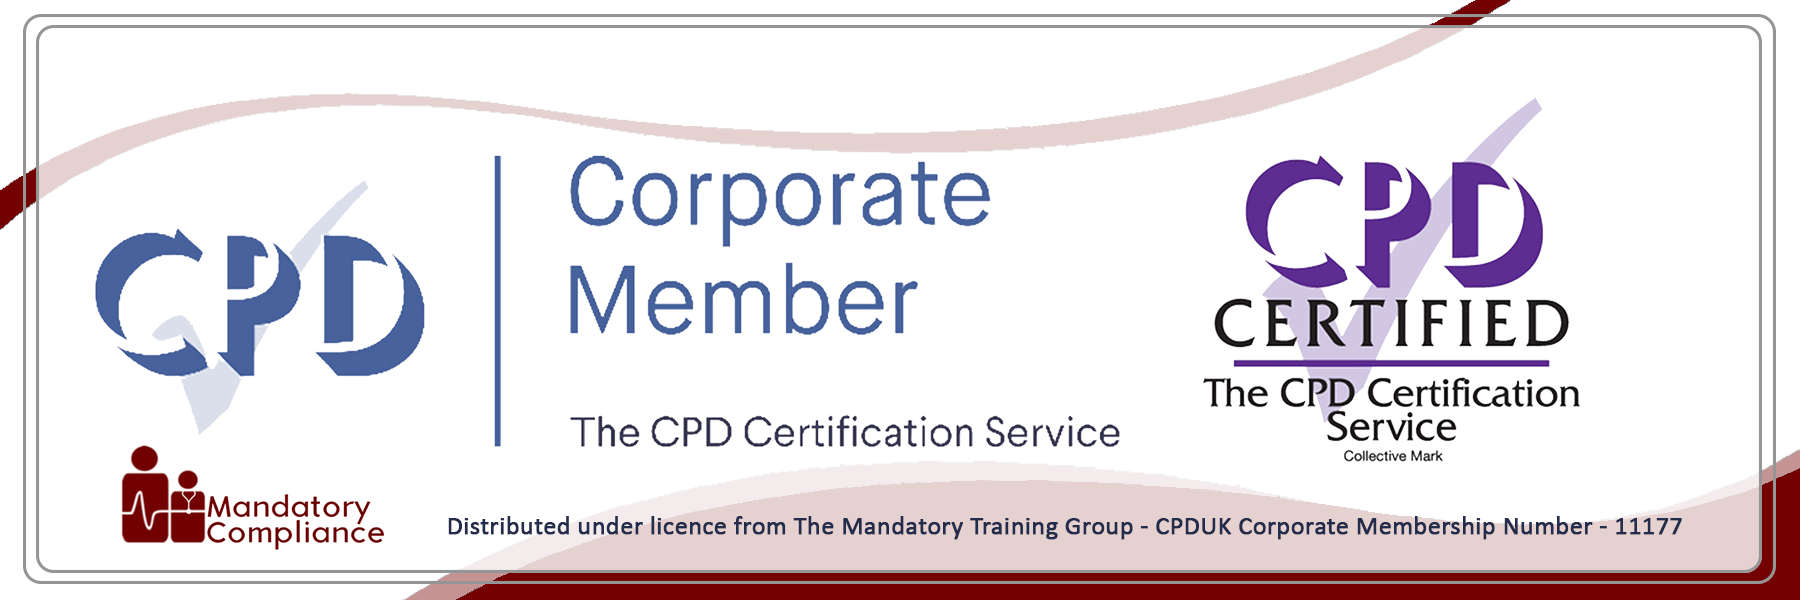 Statutory & Mandatory Training Providers – E-Learning Courses with Certificates – CPDUK Accredited - Mandatory Complian UK -